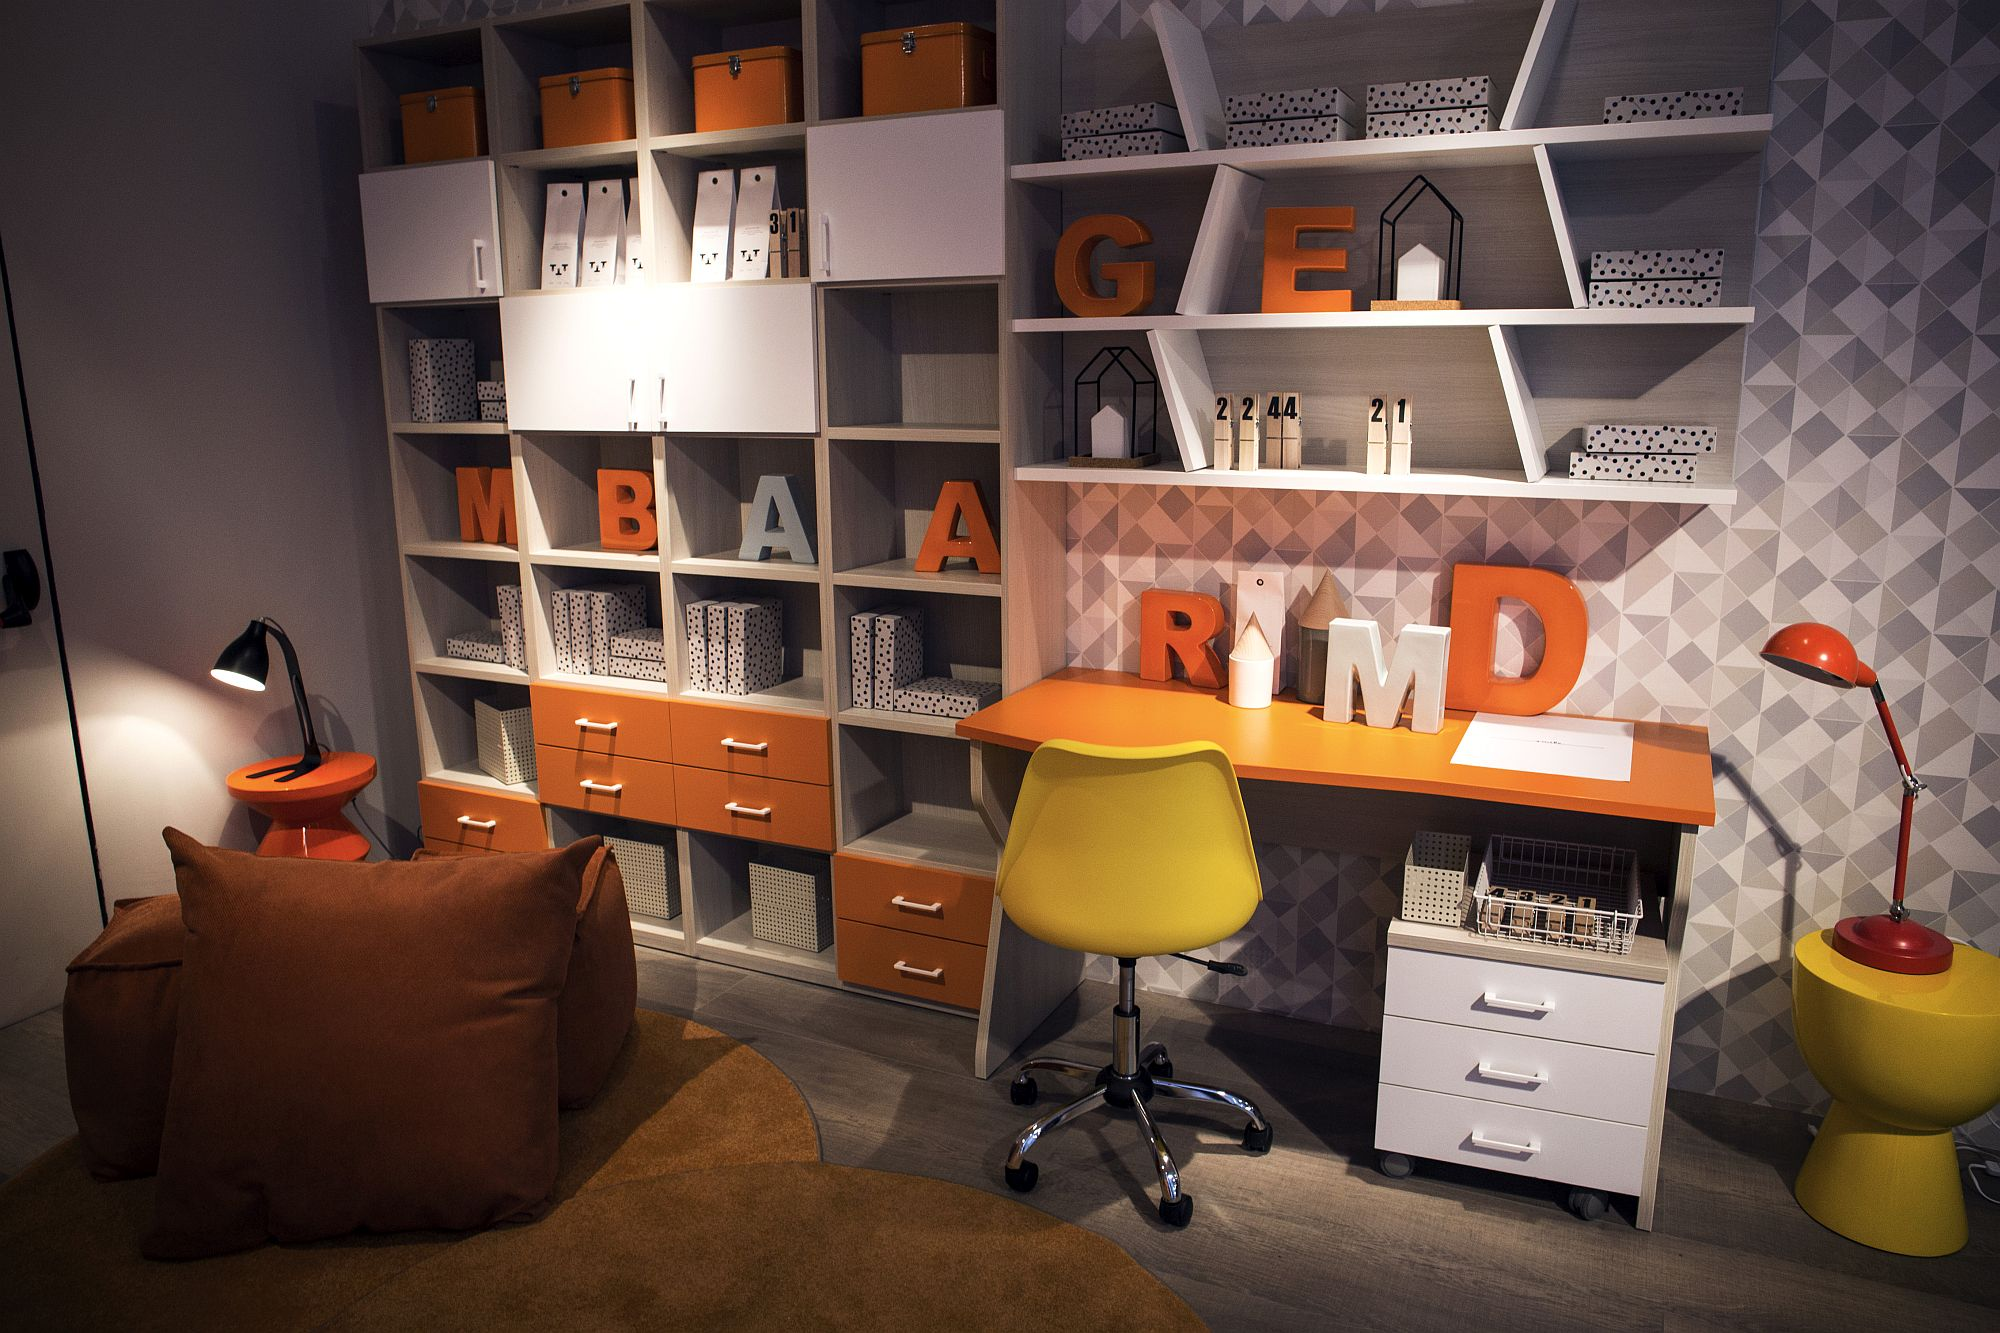 Modular shelving along with smart desk for the trendy kids' room